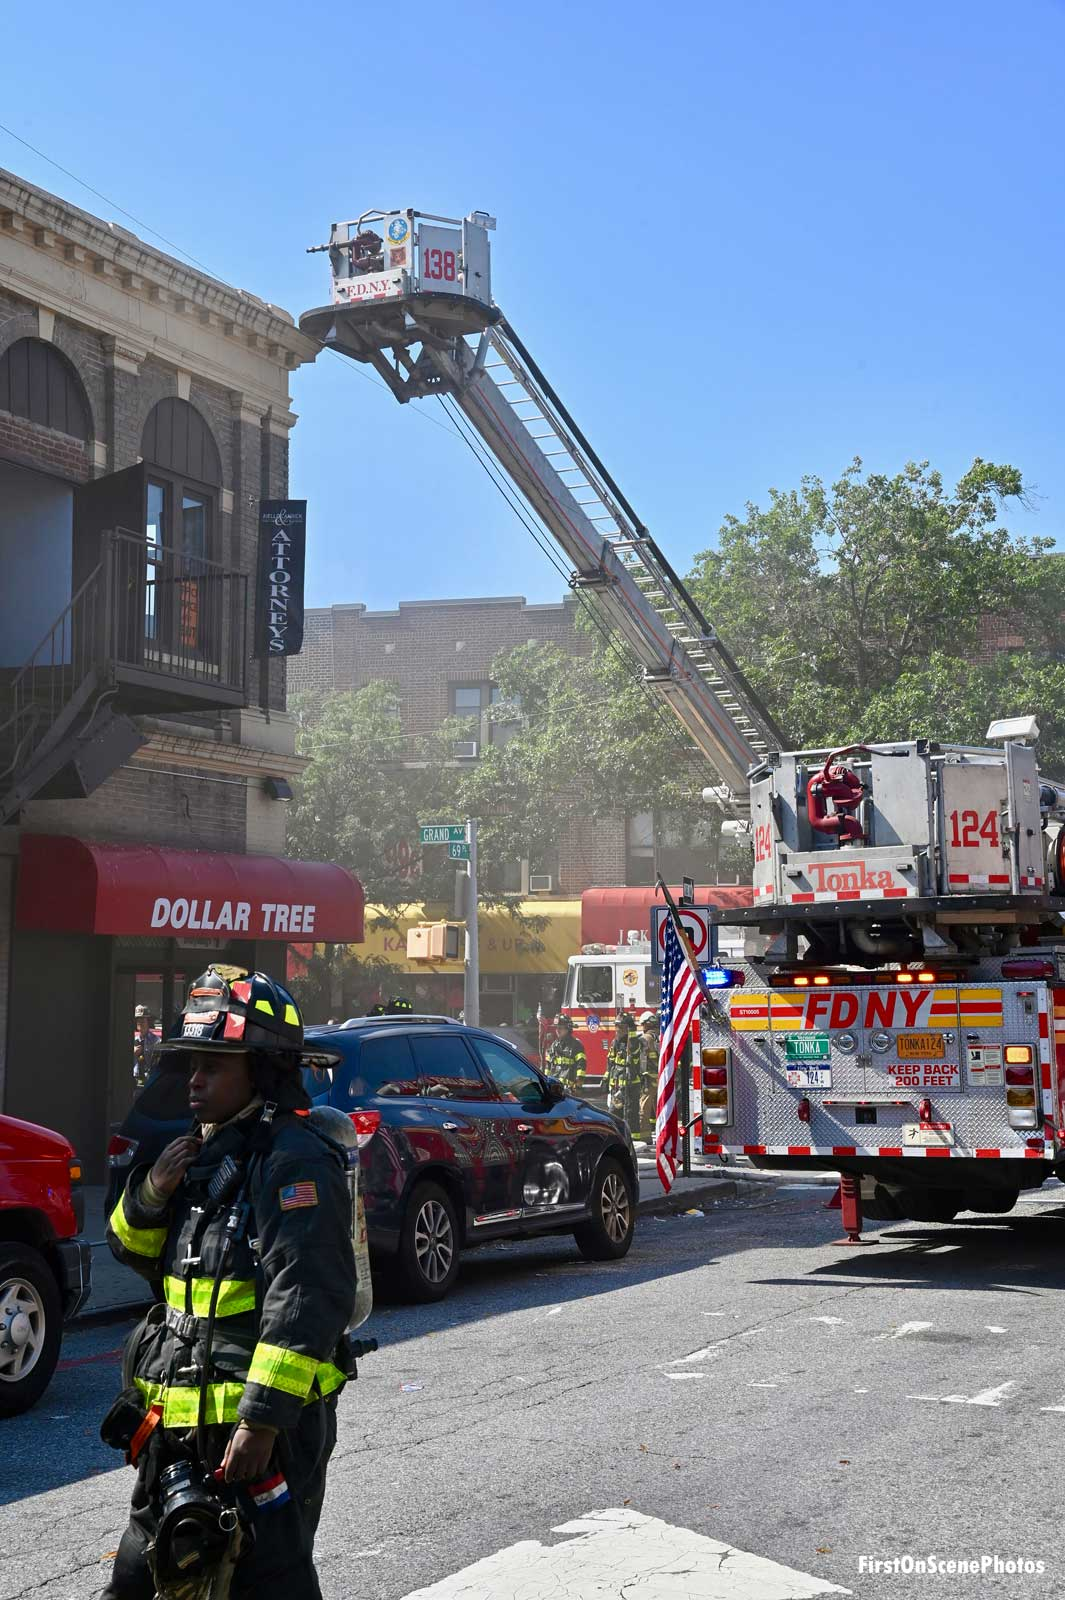 FDNY tower ladder at the scene of the fire